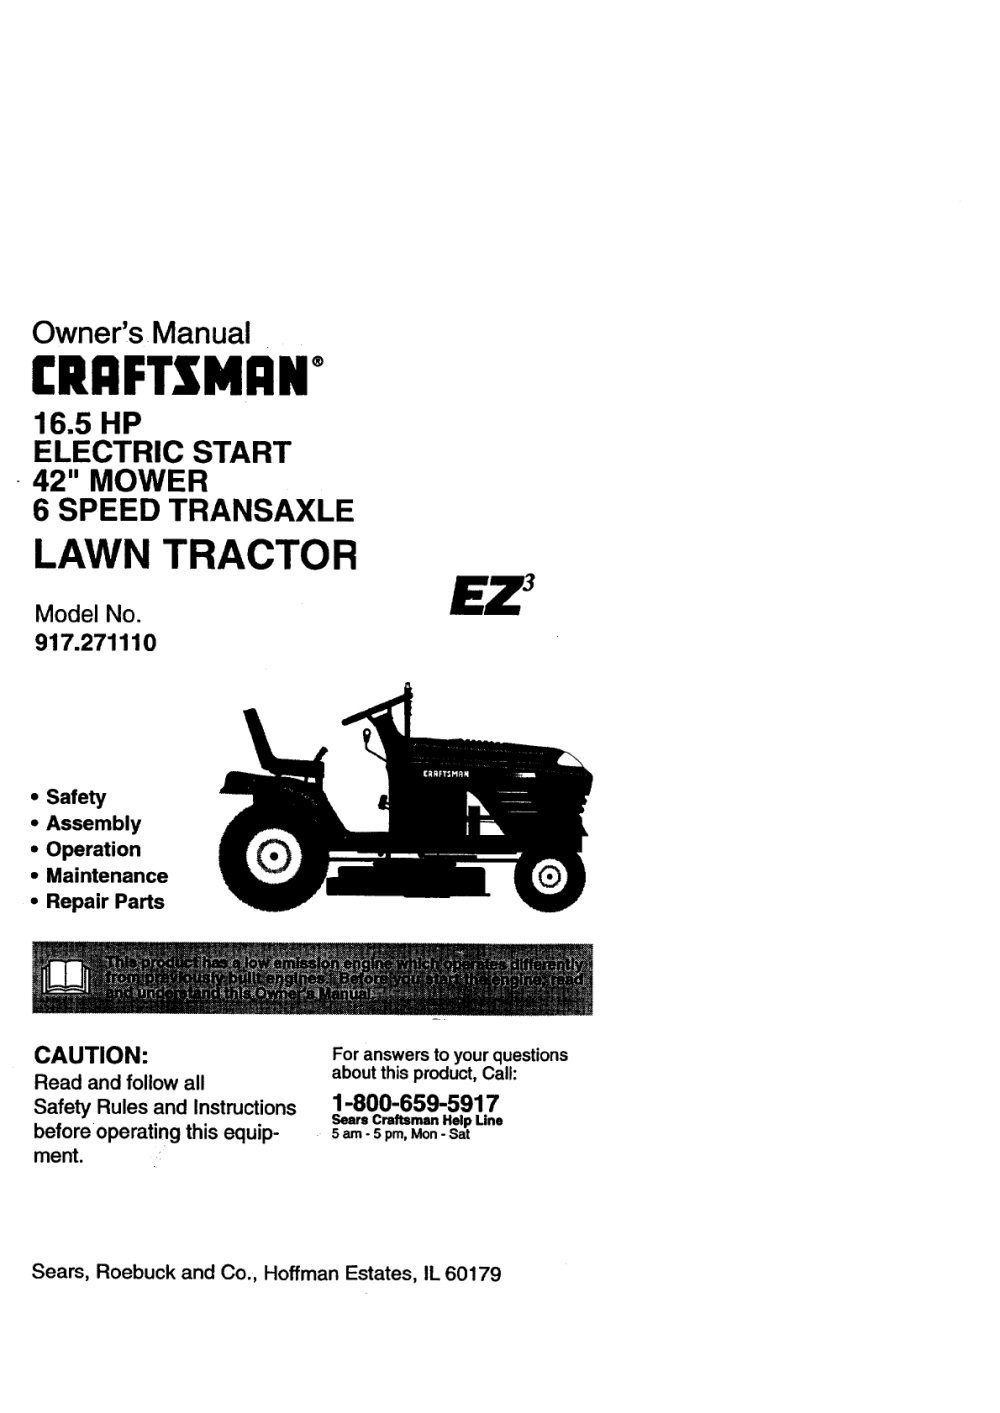 medium resolution of craftsman lawn mower 917 271110 user guide manualsonline